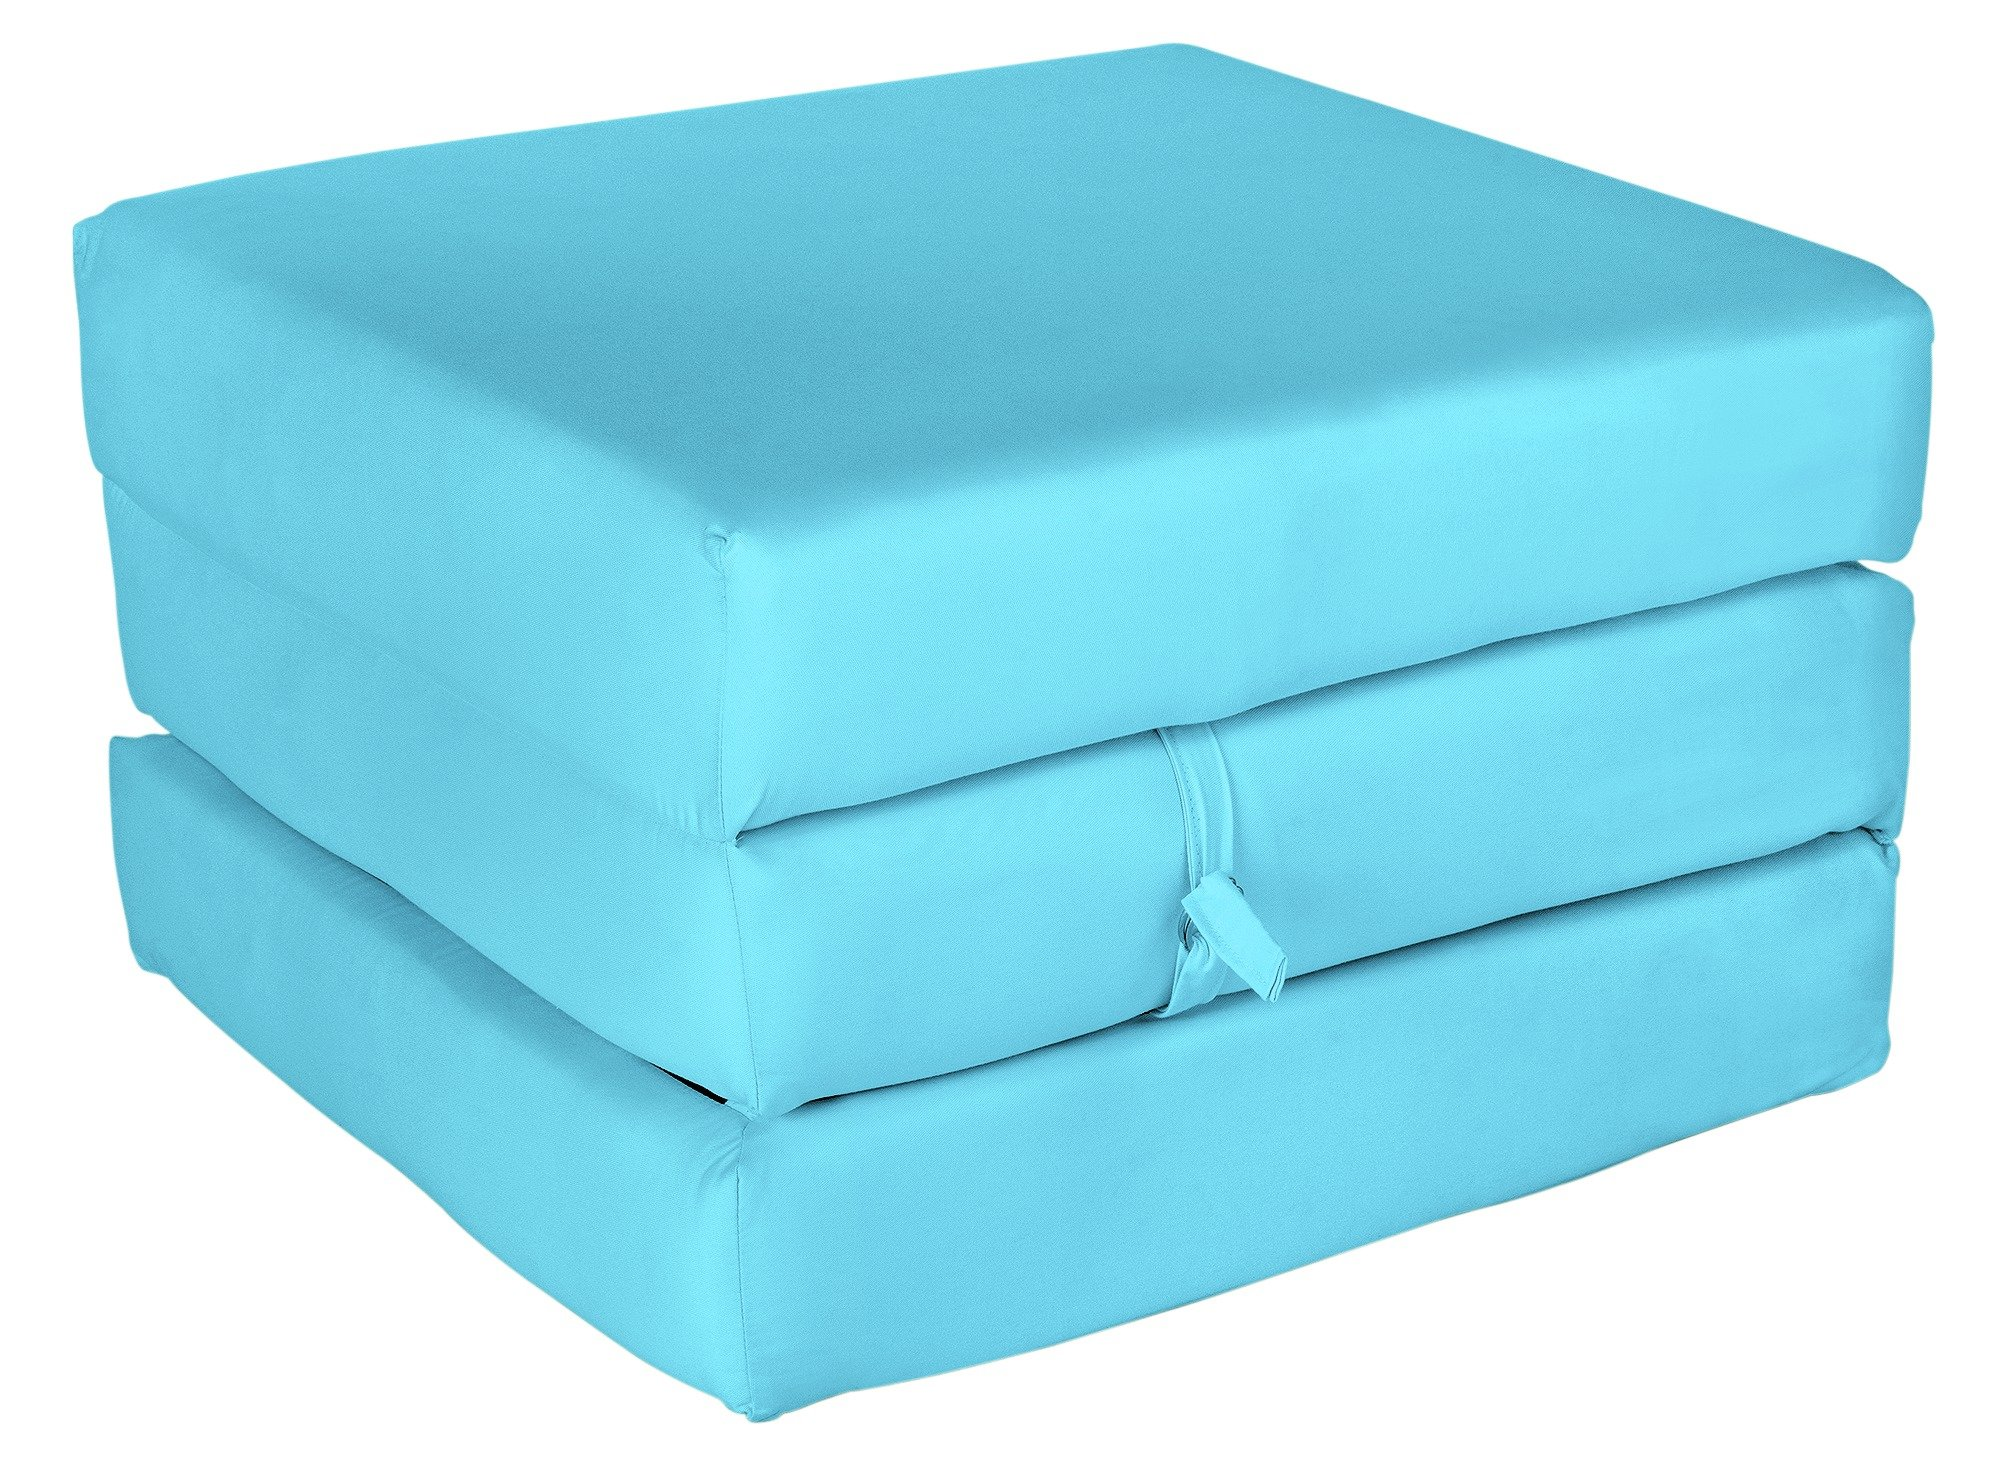 ColourMatch by Argos Single Mattress Cube review